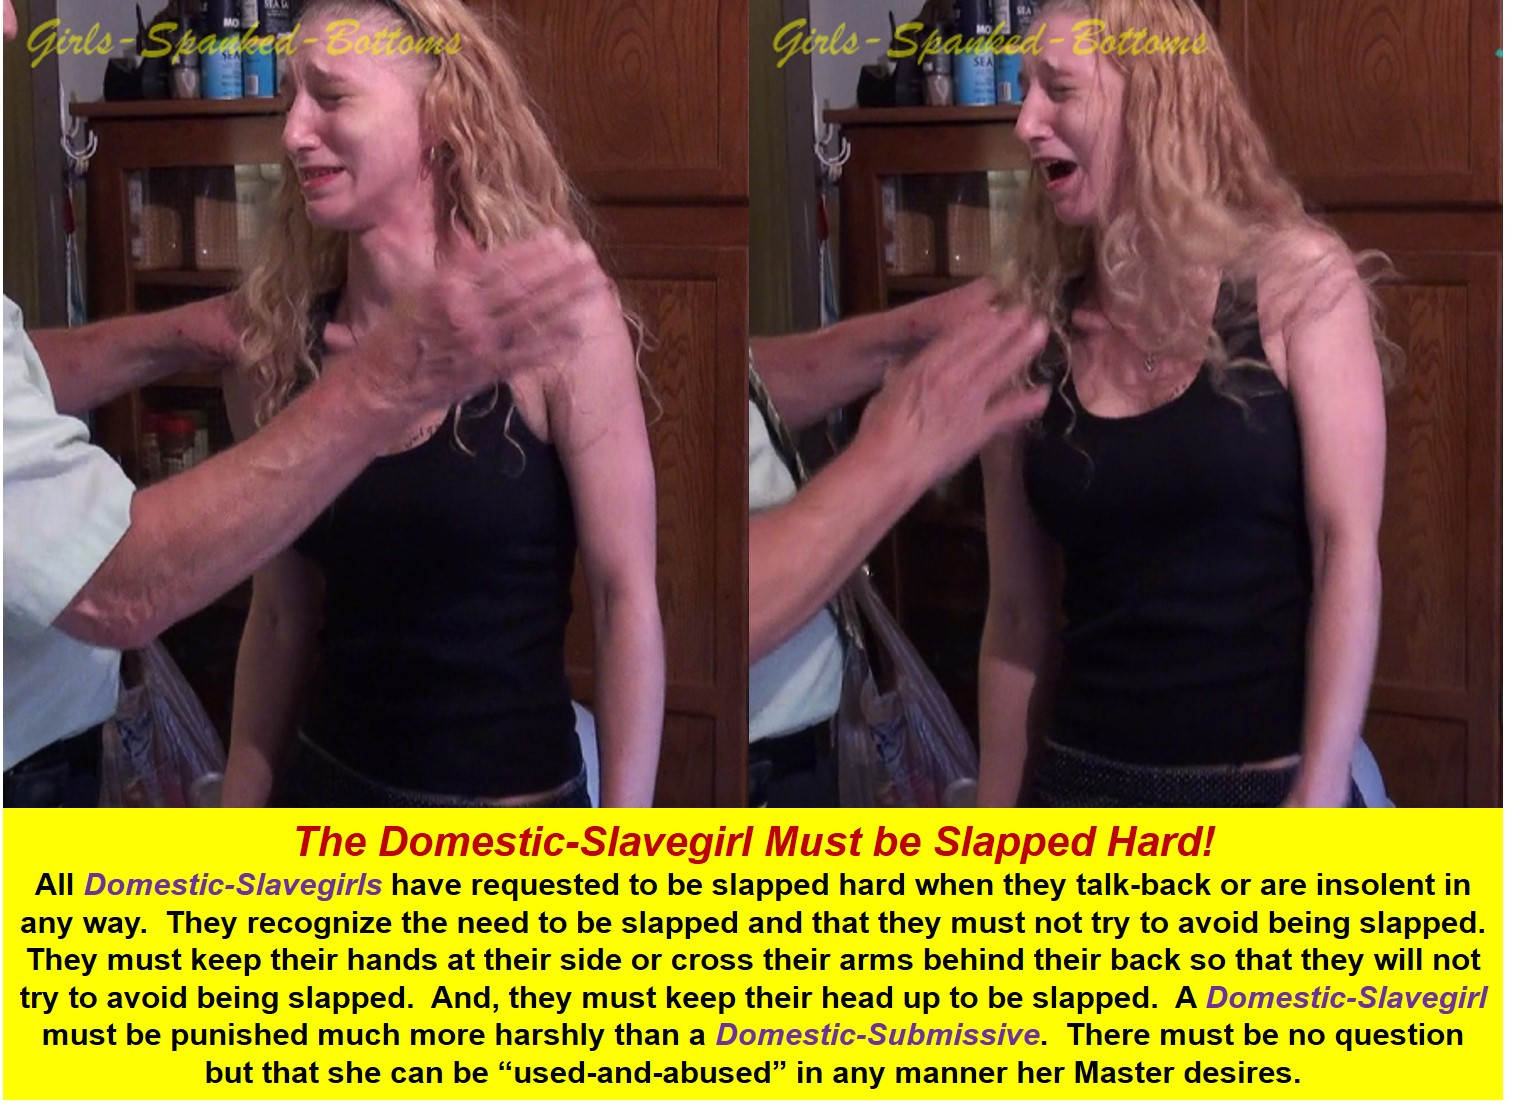 Domestic-Slavegirl Slapped Hard